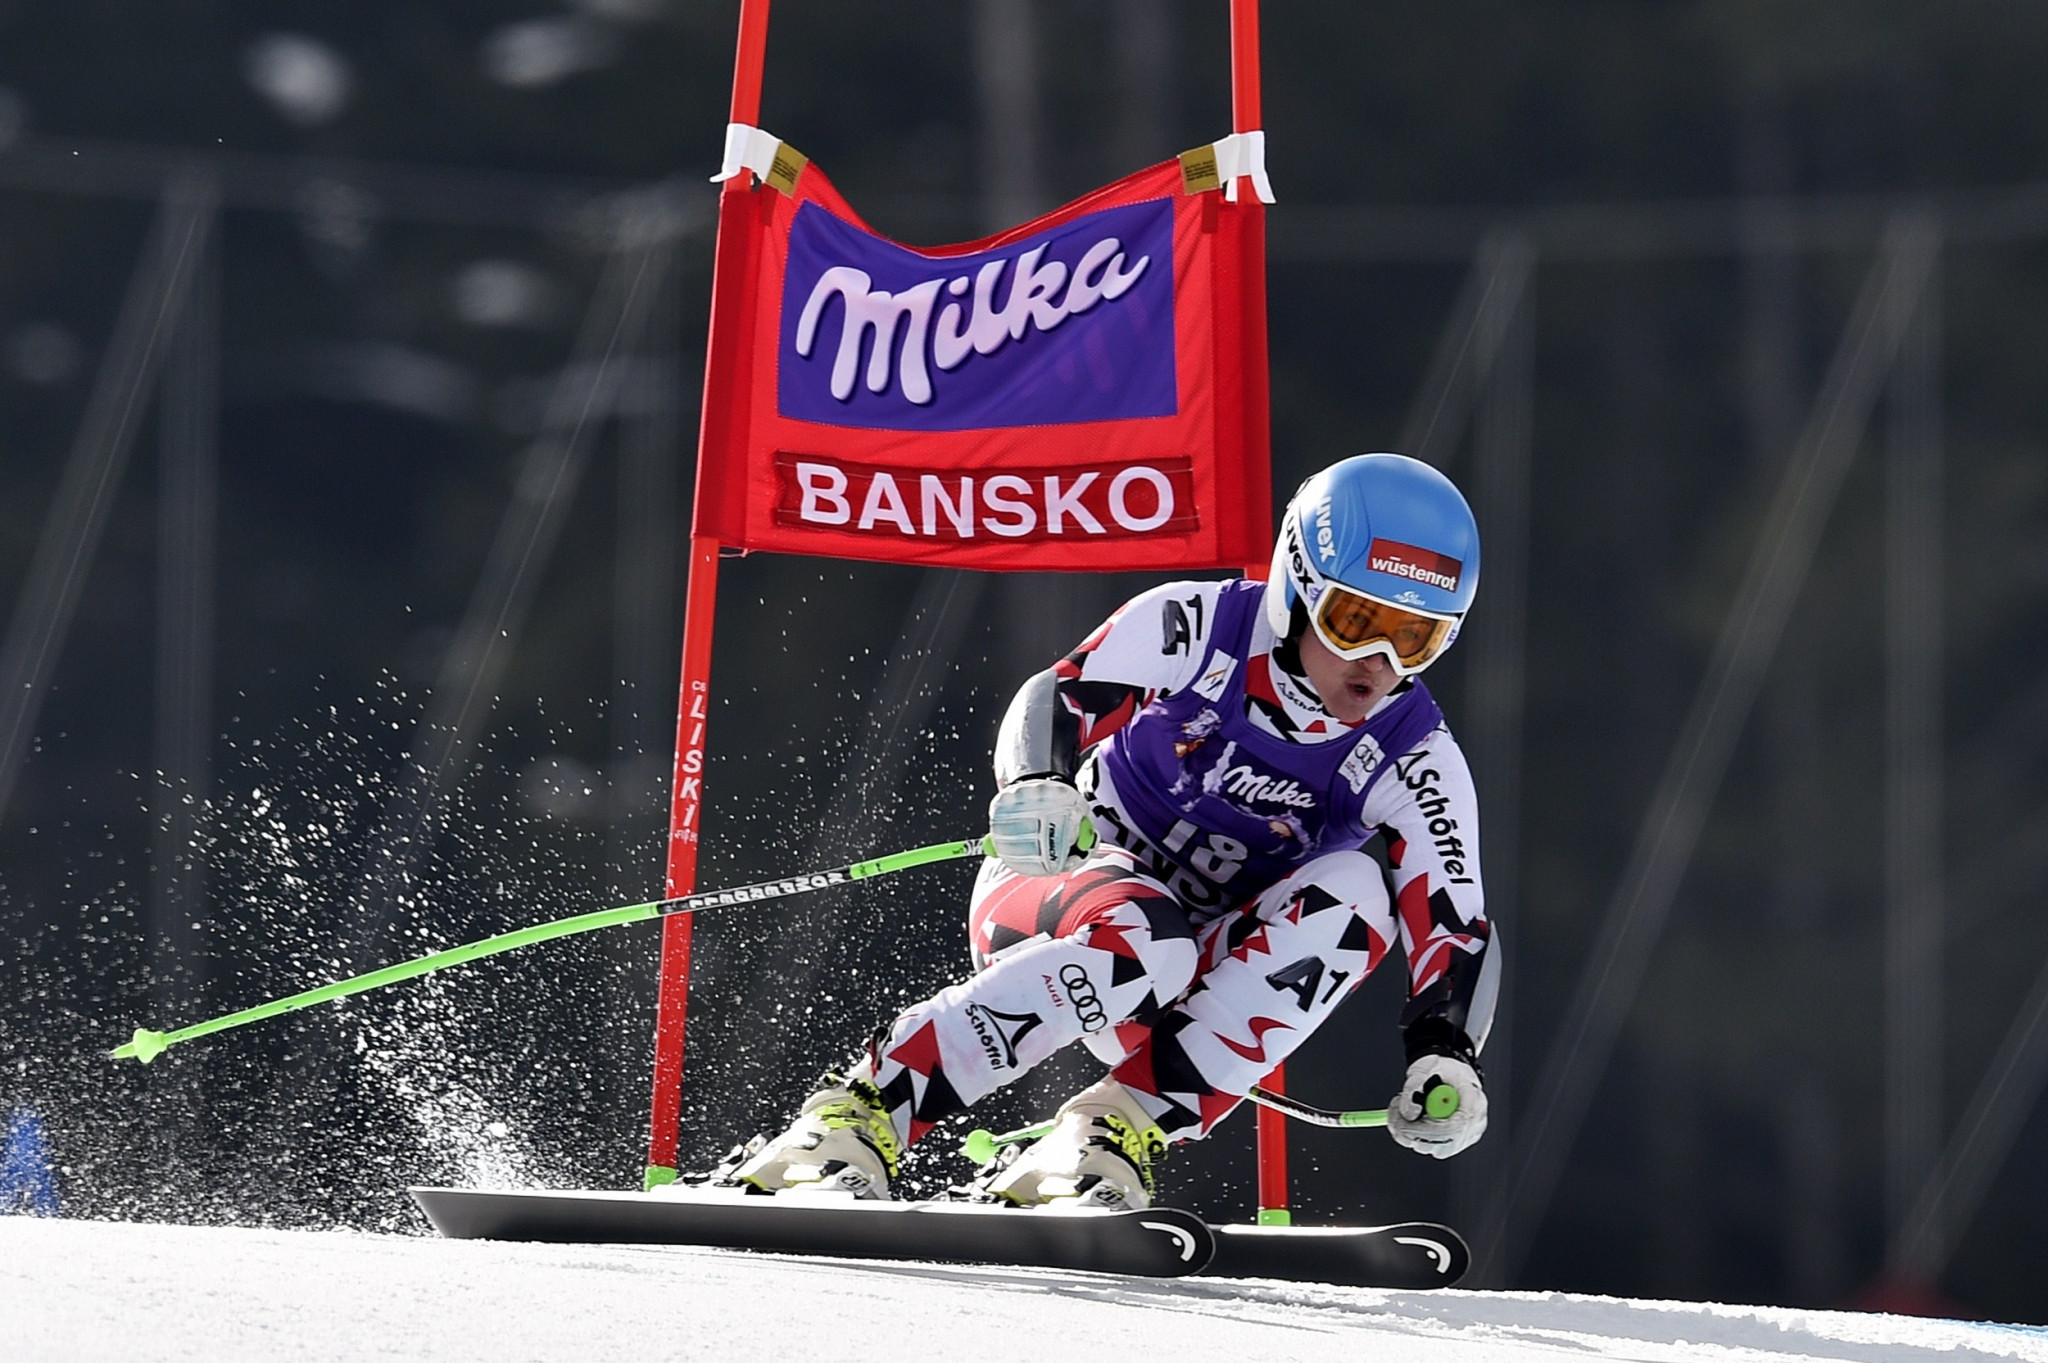 Three events will be held at the FIS Alpine Skiing World Cup in Bansko ©Getty Images